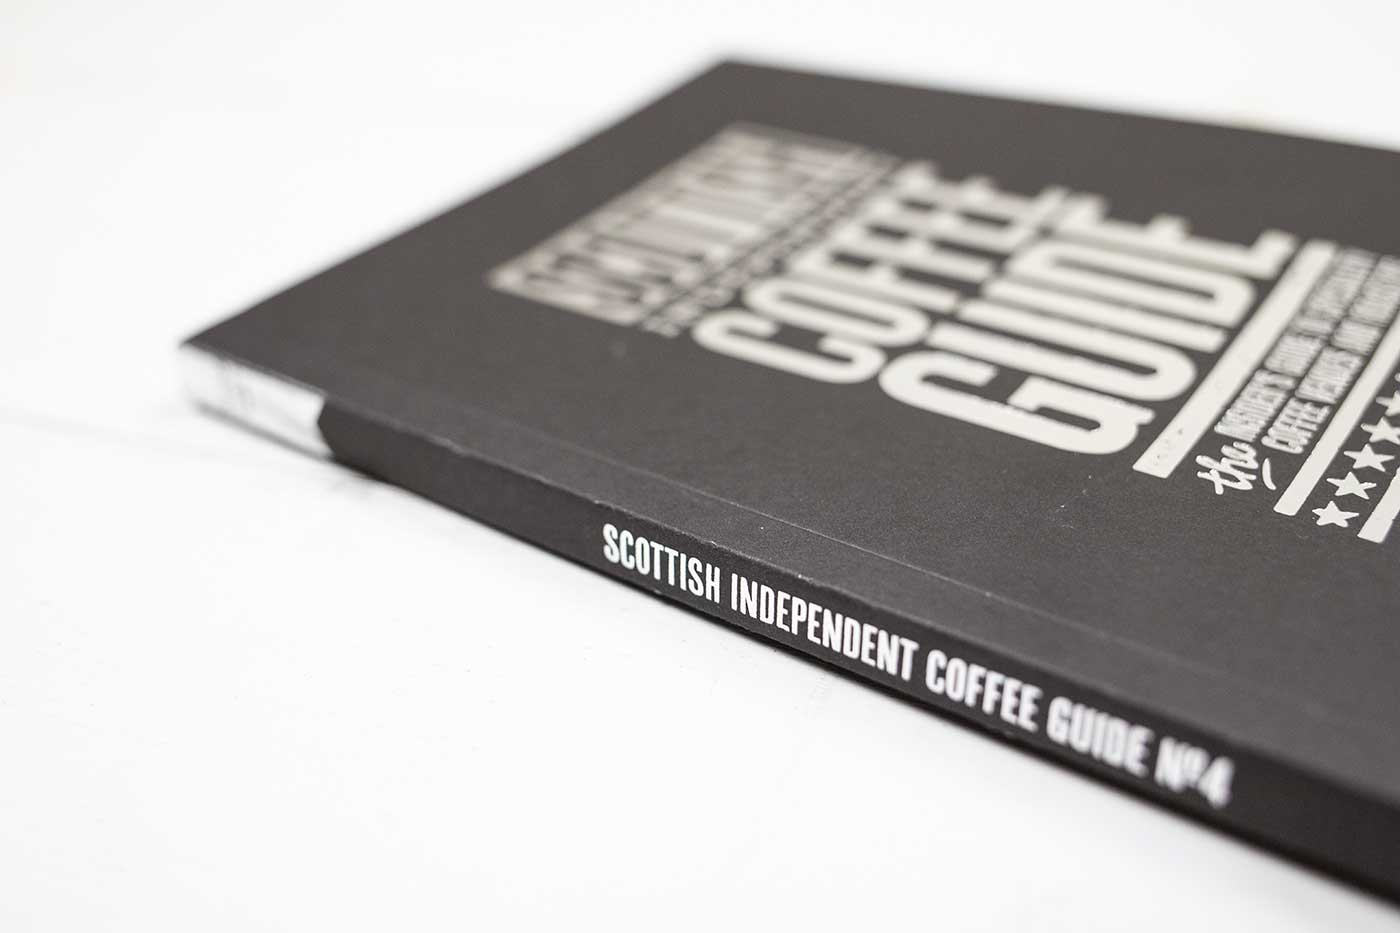 scottish indy coffee guide No4